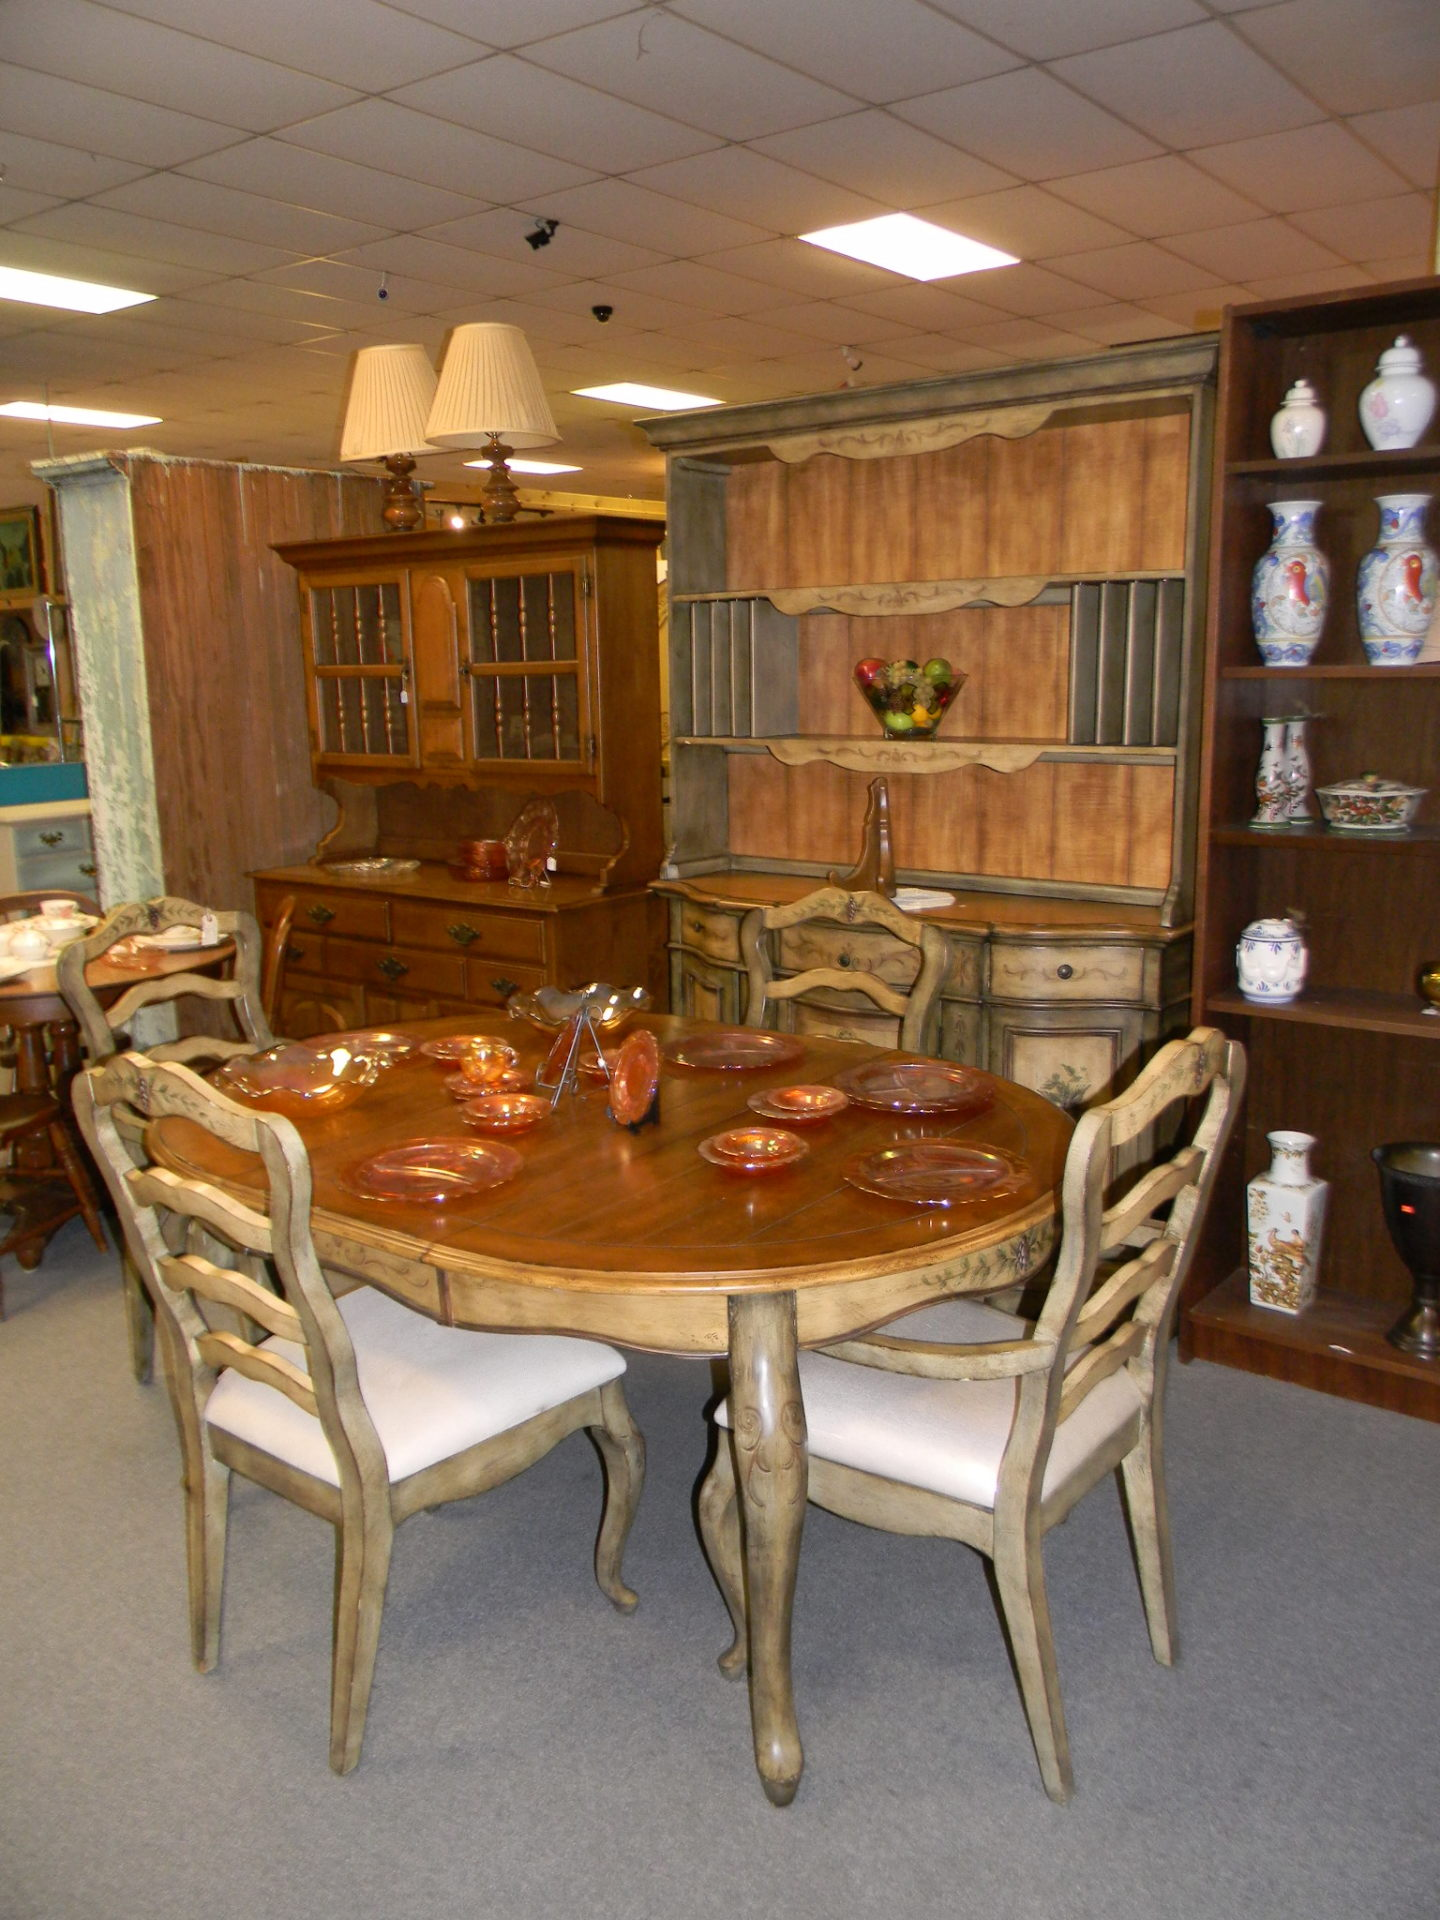 B2 Table 4 chairs and China $750